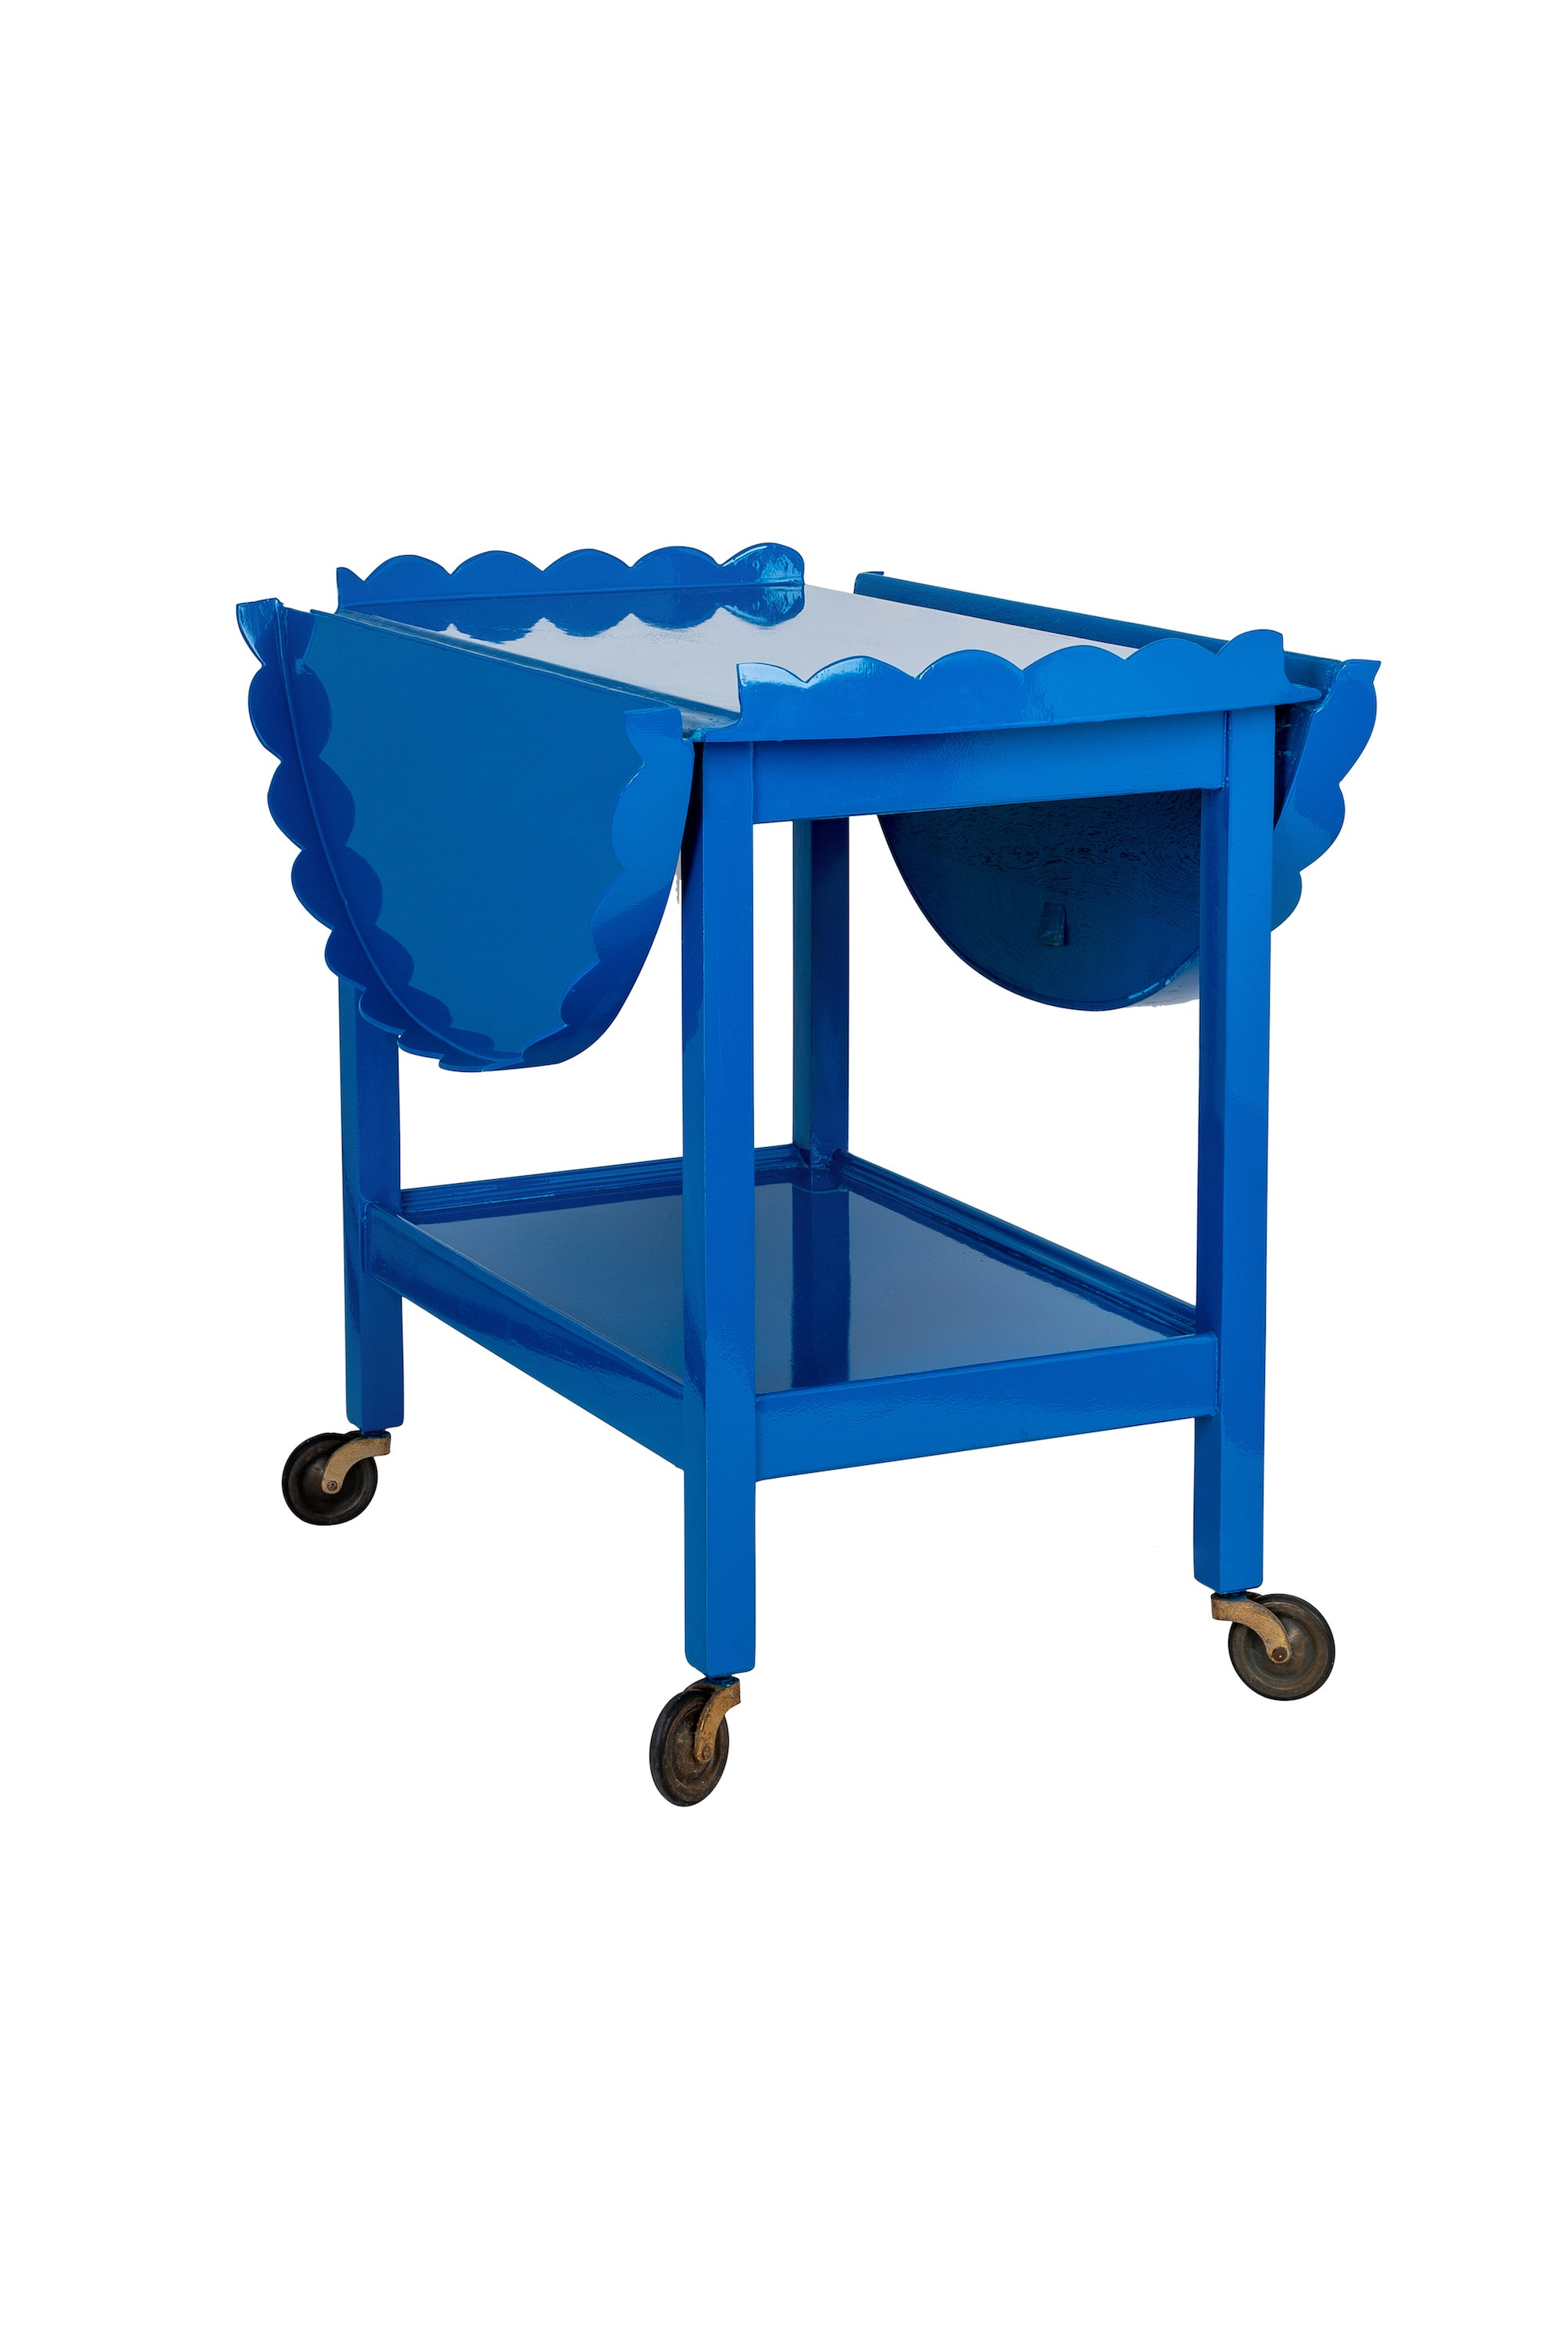 Vintage Cobalt Blue Hand-Lacquered Two-Tiered Winged Scalloped Trolley